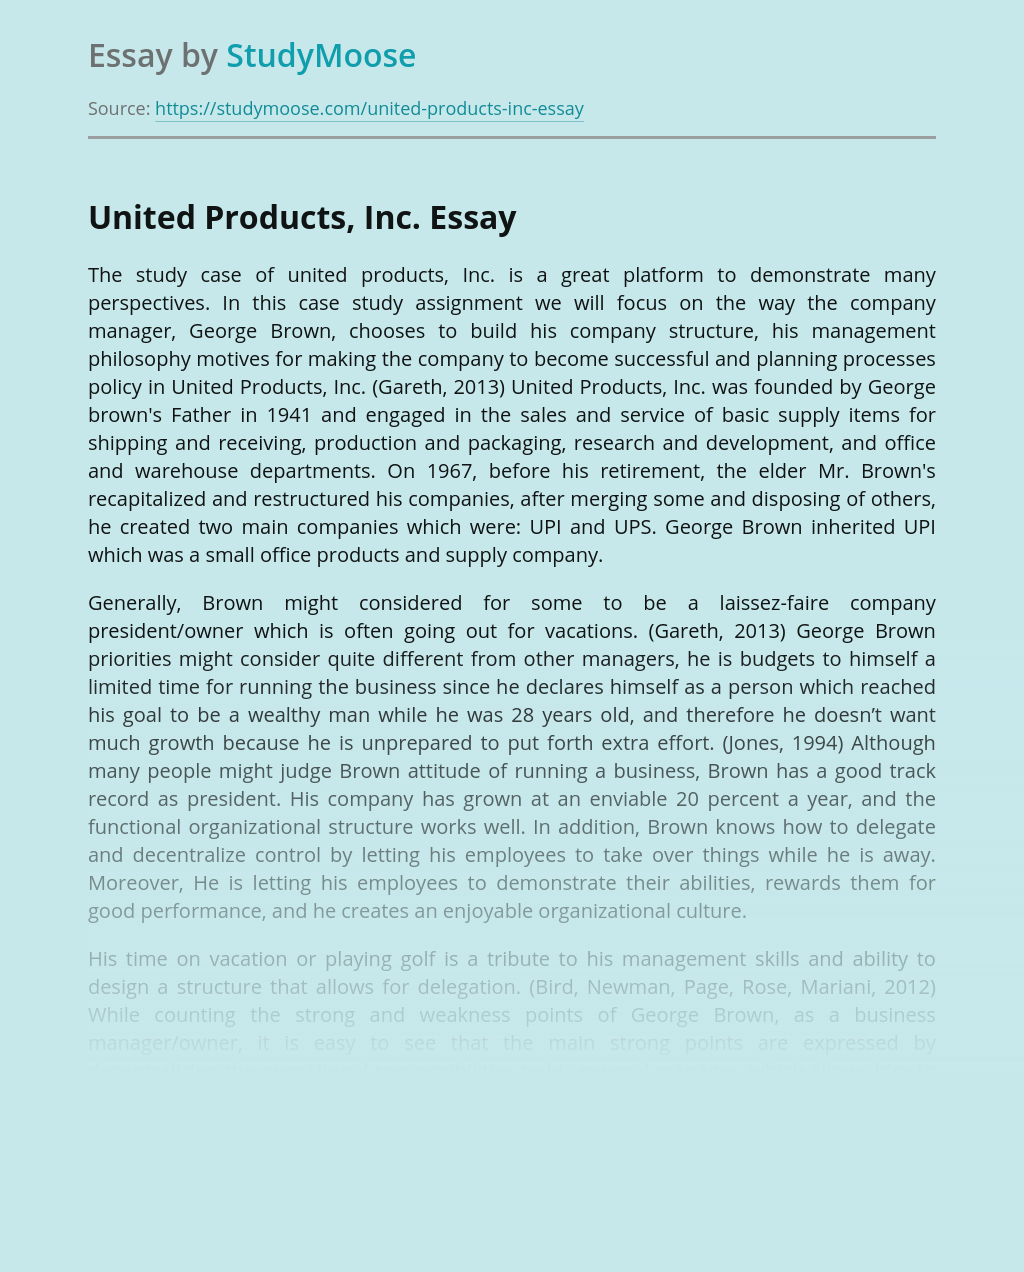 Organizational Structure and Management of United Products Inc